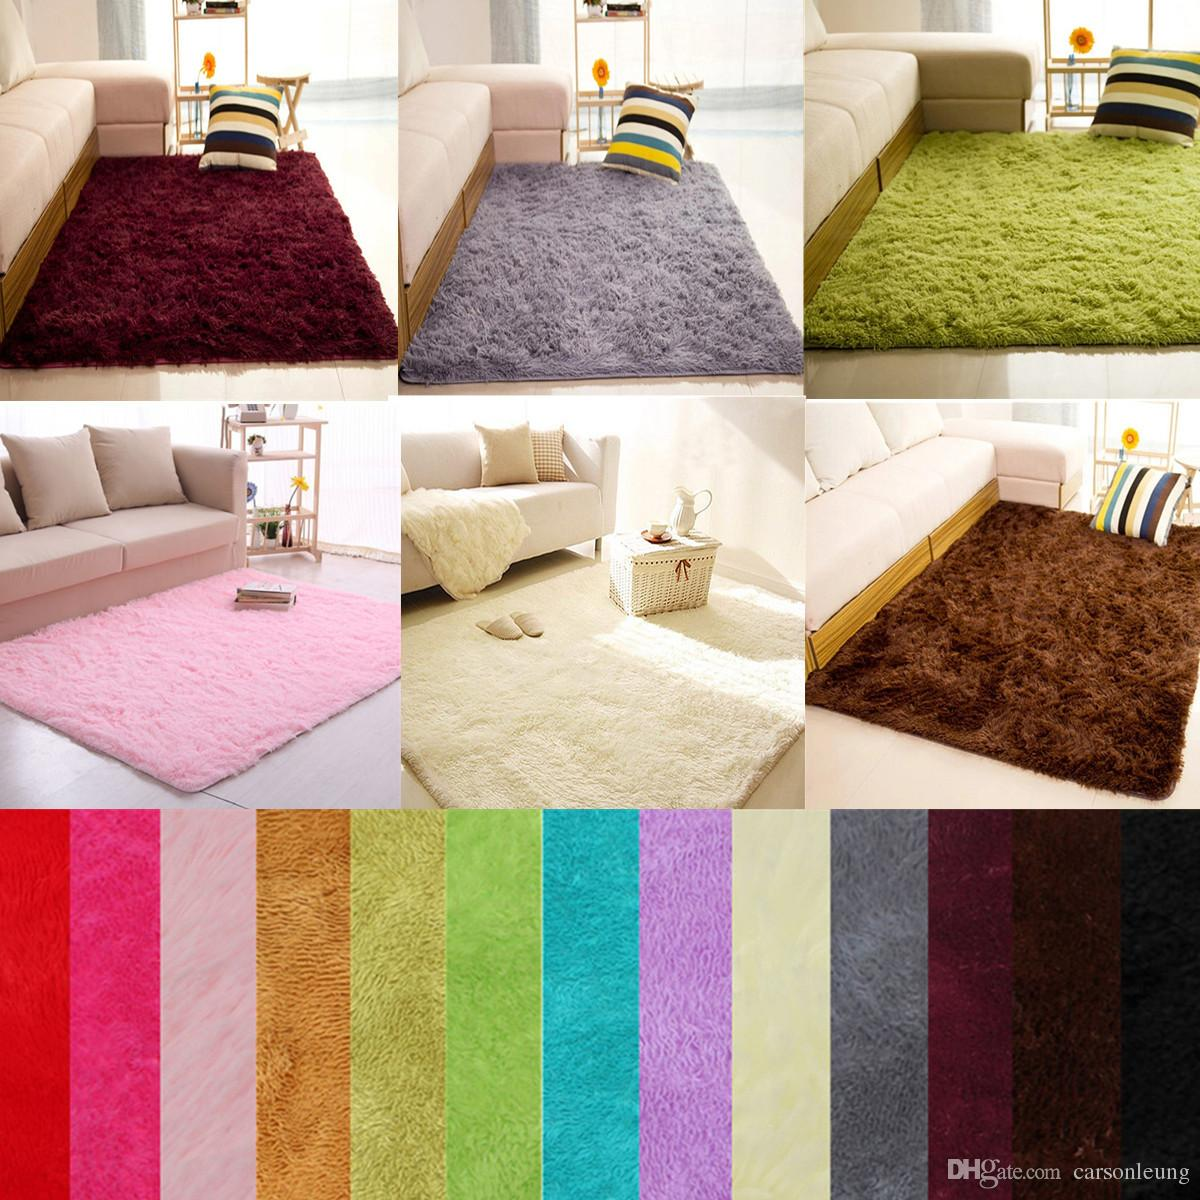 Fluffy Rugs Anti Skid Shaggy Area Rug Dining Room Home Bedroom Carpet Floor  Mat, 4 Sizes Cost Of Carpet Carpet Replacement From Carsonleung, $6.54|  Dhgate.